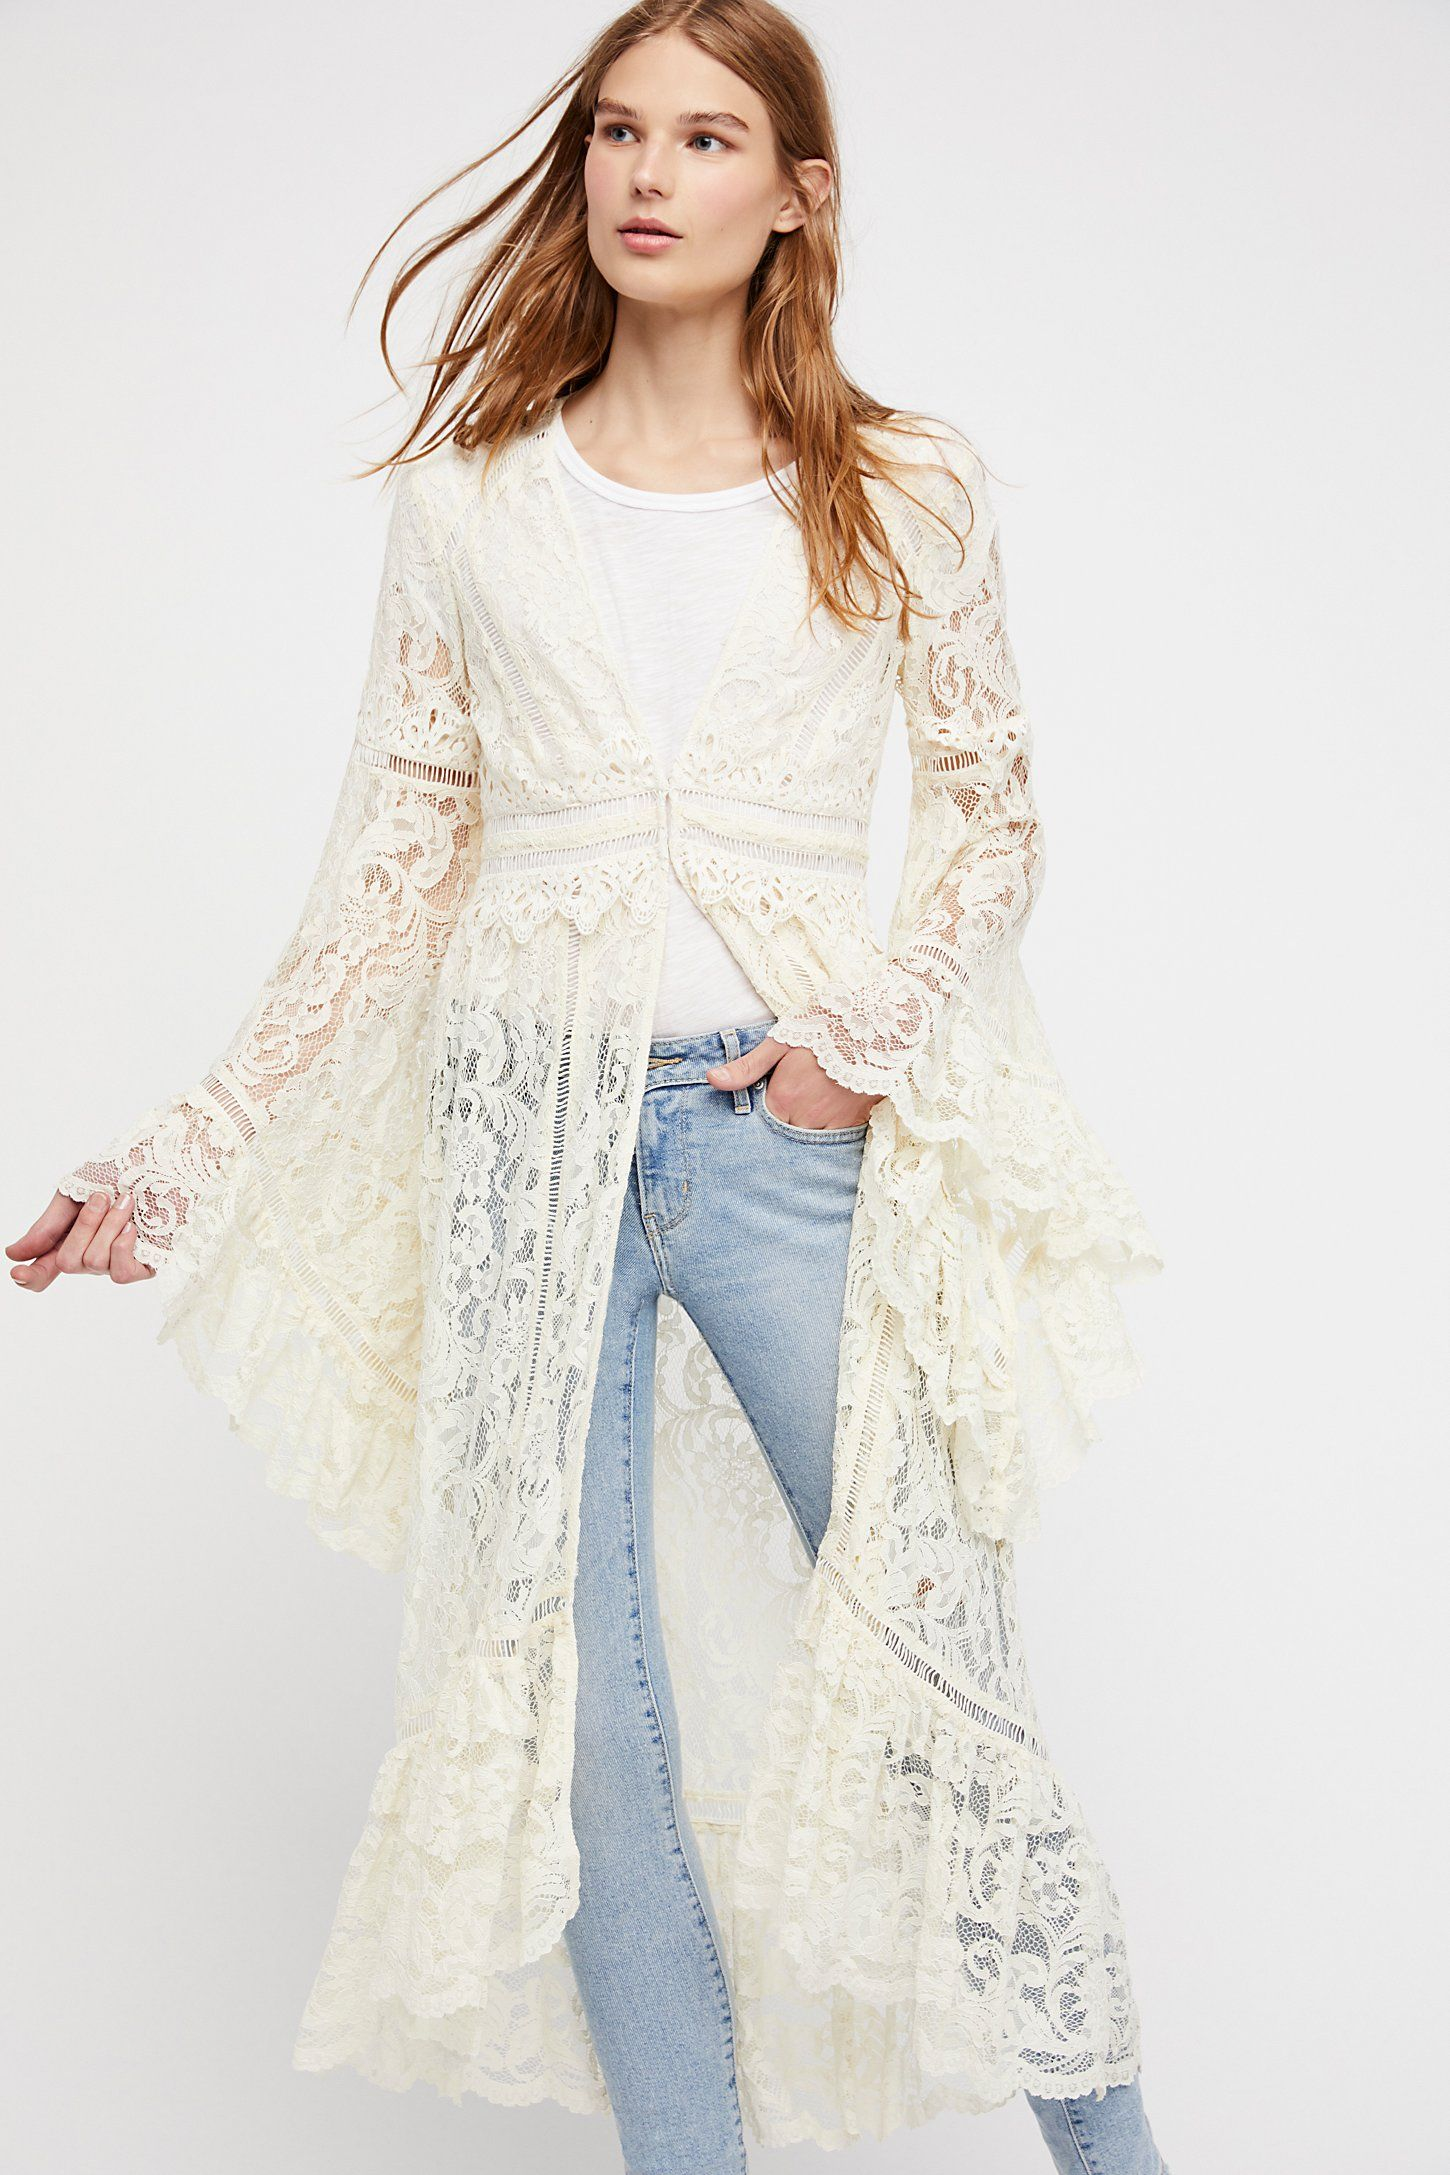 Shop our Rhiannon Lace Kimono at Free People.com. Share style pics ...